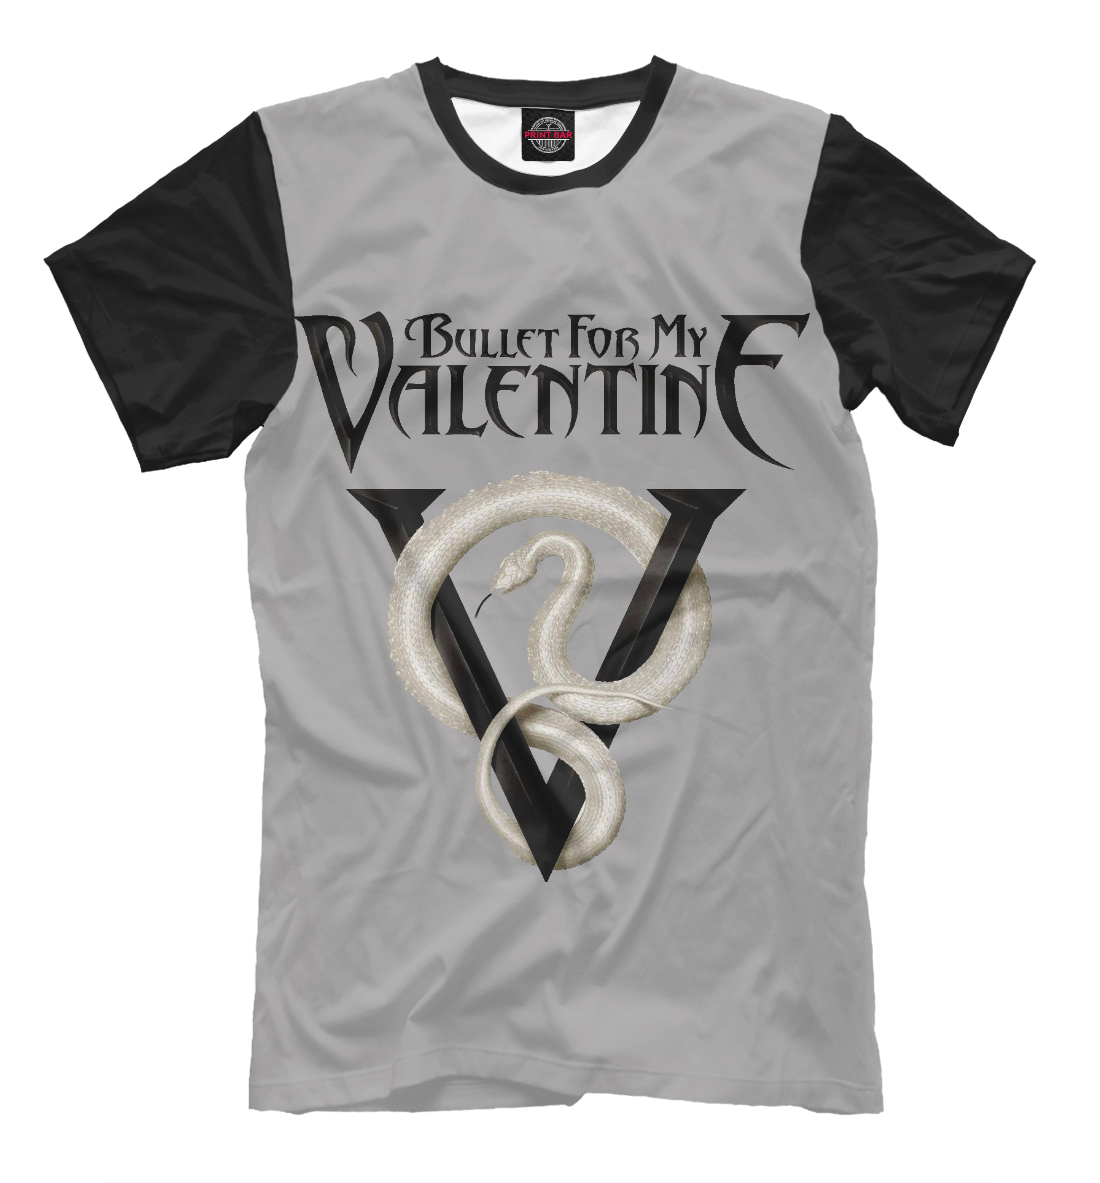 Купить Bullet for My Valentine Venom, Printbar, Футболки, BMV-399029-fut-2